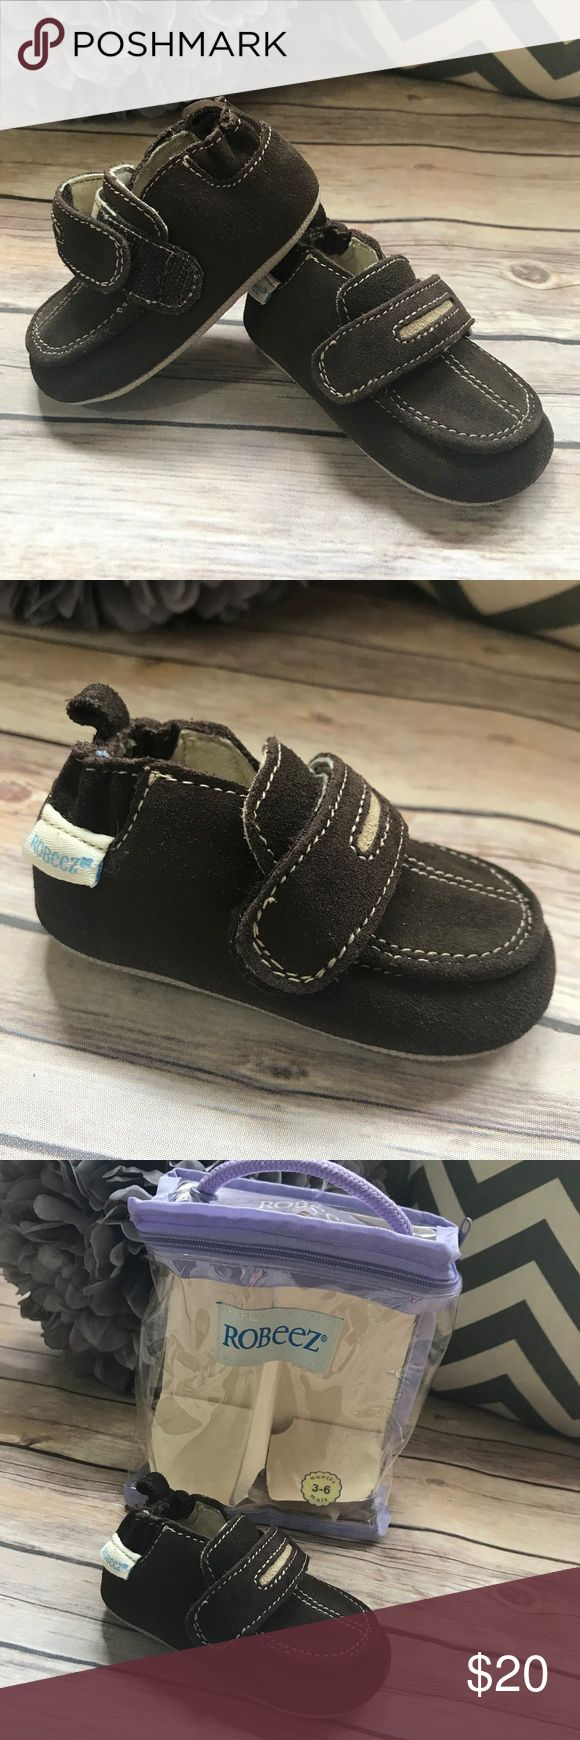 """Robeez Brown Suede Loafers 3-6 mo Soft Sole Shoes Robeez Brown Suede Loafers 3-6 mo Soft Sole Shoes   Second owners so I'm not going to say NWT but they do not look worn. Size is 3-6 mo. More substantial sole than typical Robeez (not leather on the outsole) Hook and loop strap. 4.75"""" heel to toe on the outsole. Robeez Shoes Baby & Walker"""